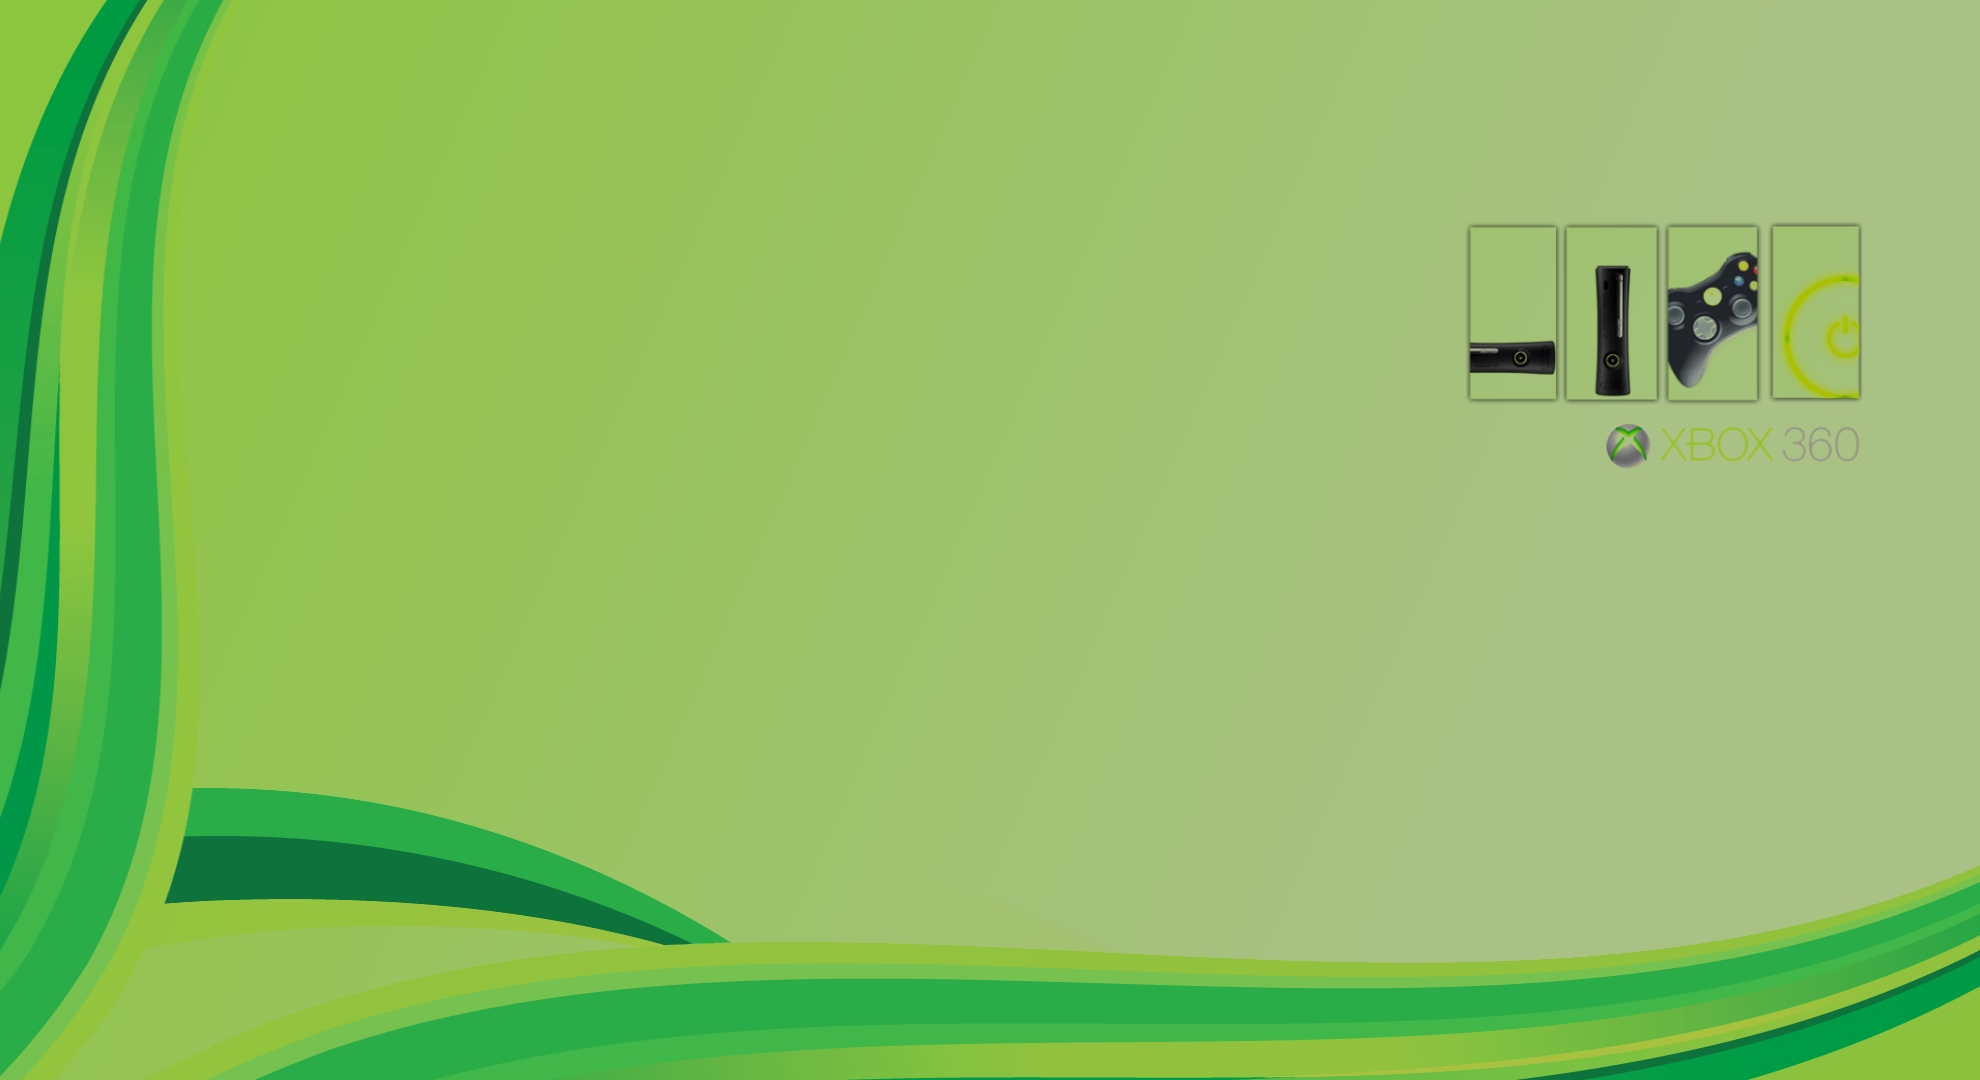 Free Download Xbox 360 Dashboard Wallpaper By Sk8inmonk